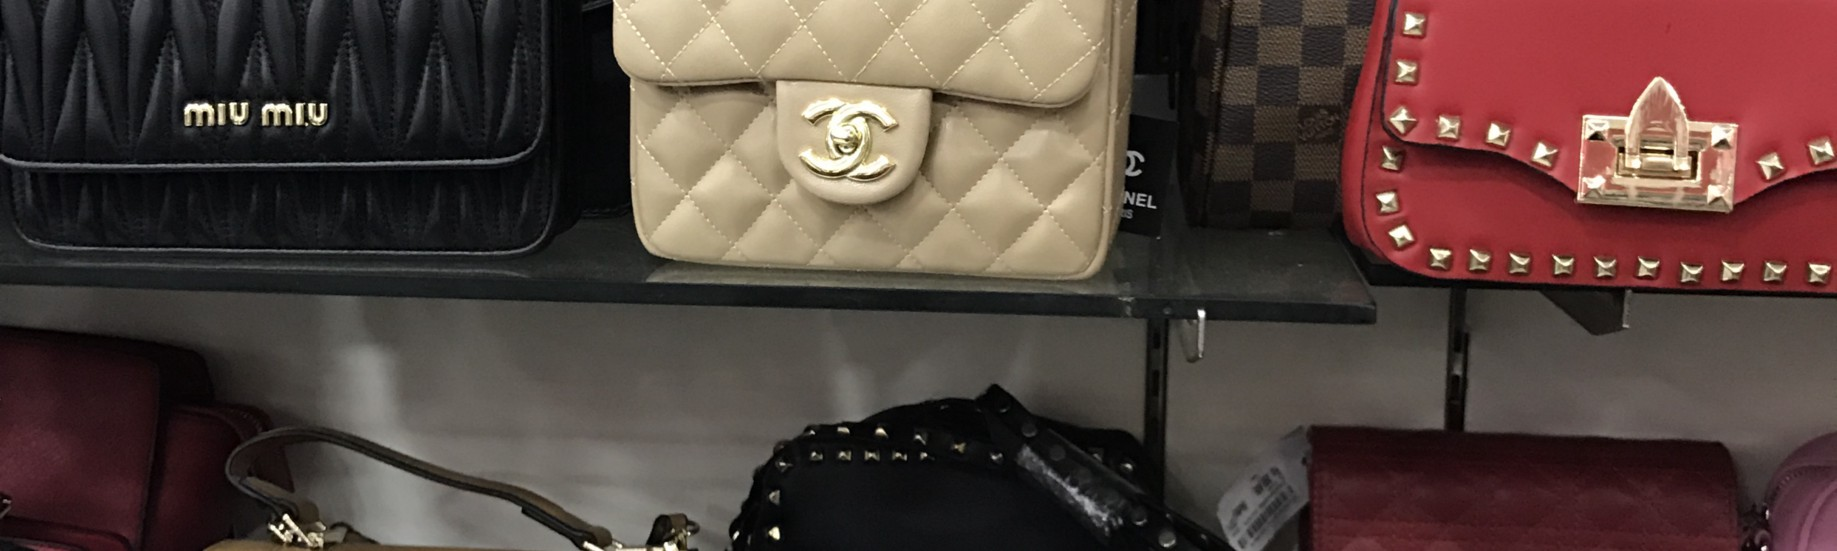 Are Louis Vuitton Bags Made In Usa Yoogis Closet Blog >> The Truth About Counterfeit Luxury Handbags Becca Risa Luna Medium